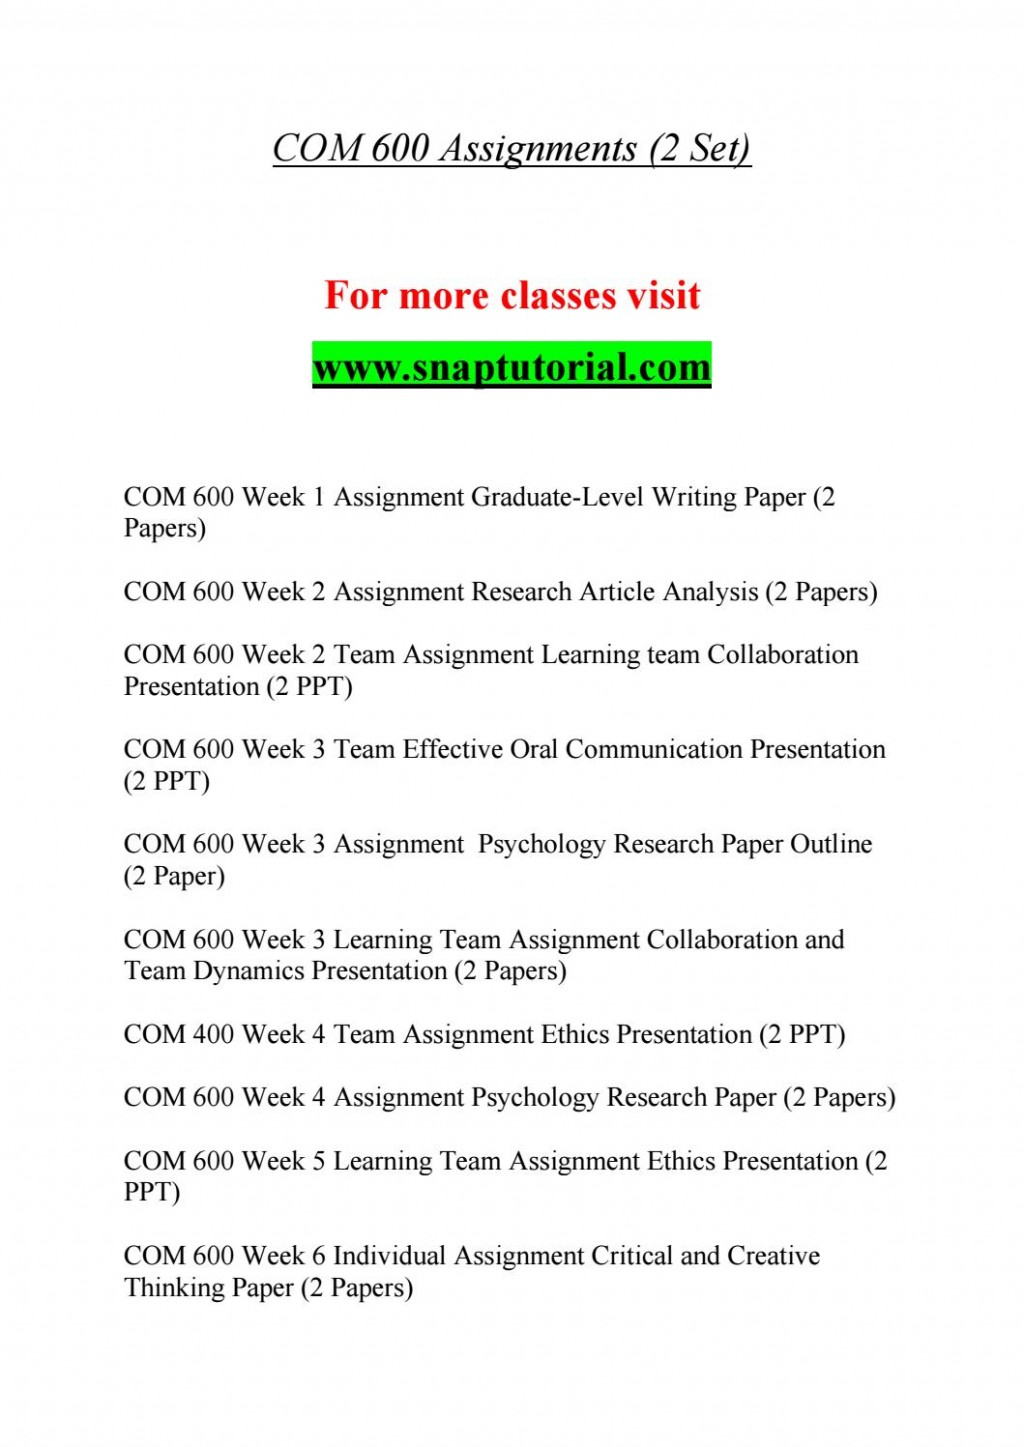 010 Research Paper Psychology Outline Com Page 1 Striking 600 Com/600 Large